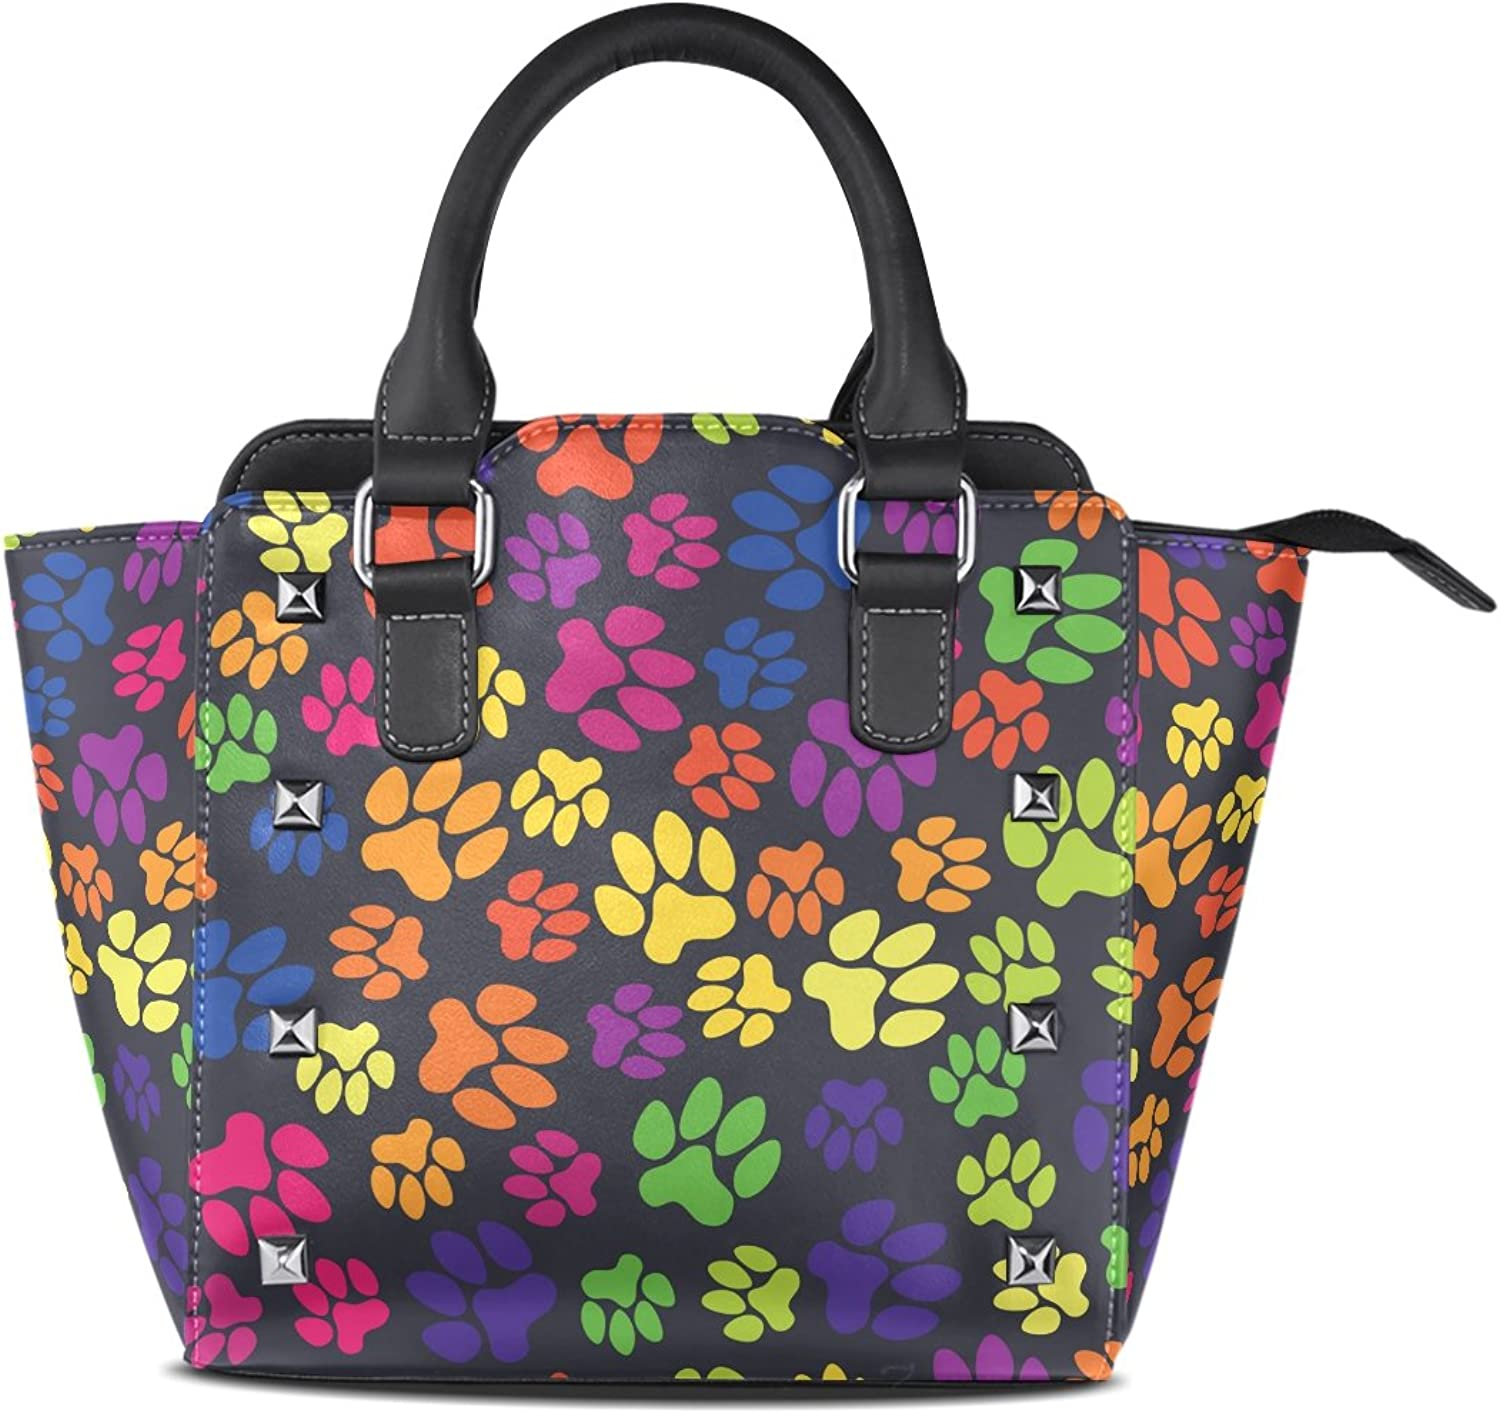 Sunlome Cat Dog Rainbow Paws Footprints Print Women's Leather Tote Shoulder Bags Handbags